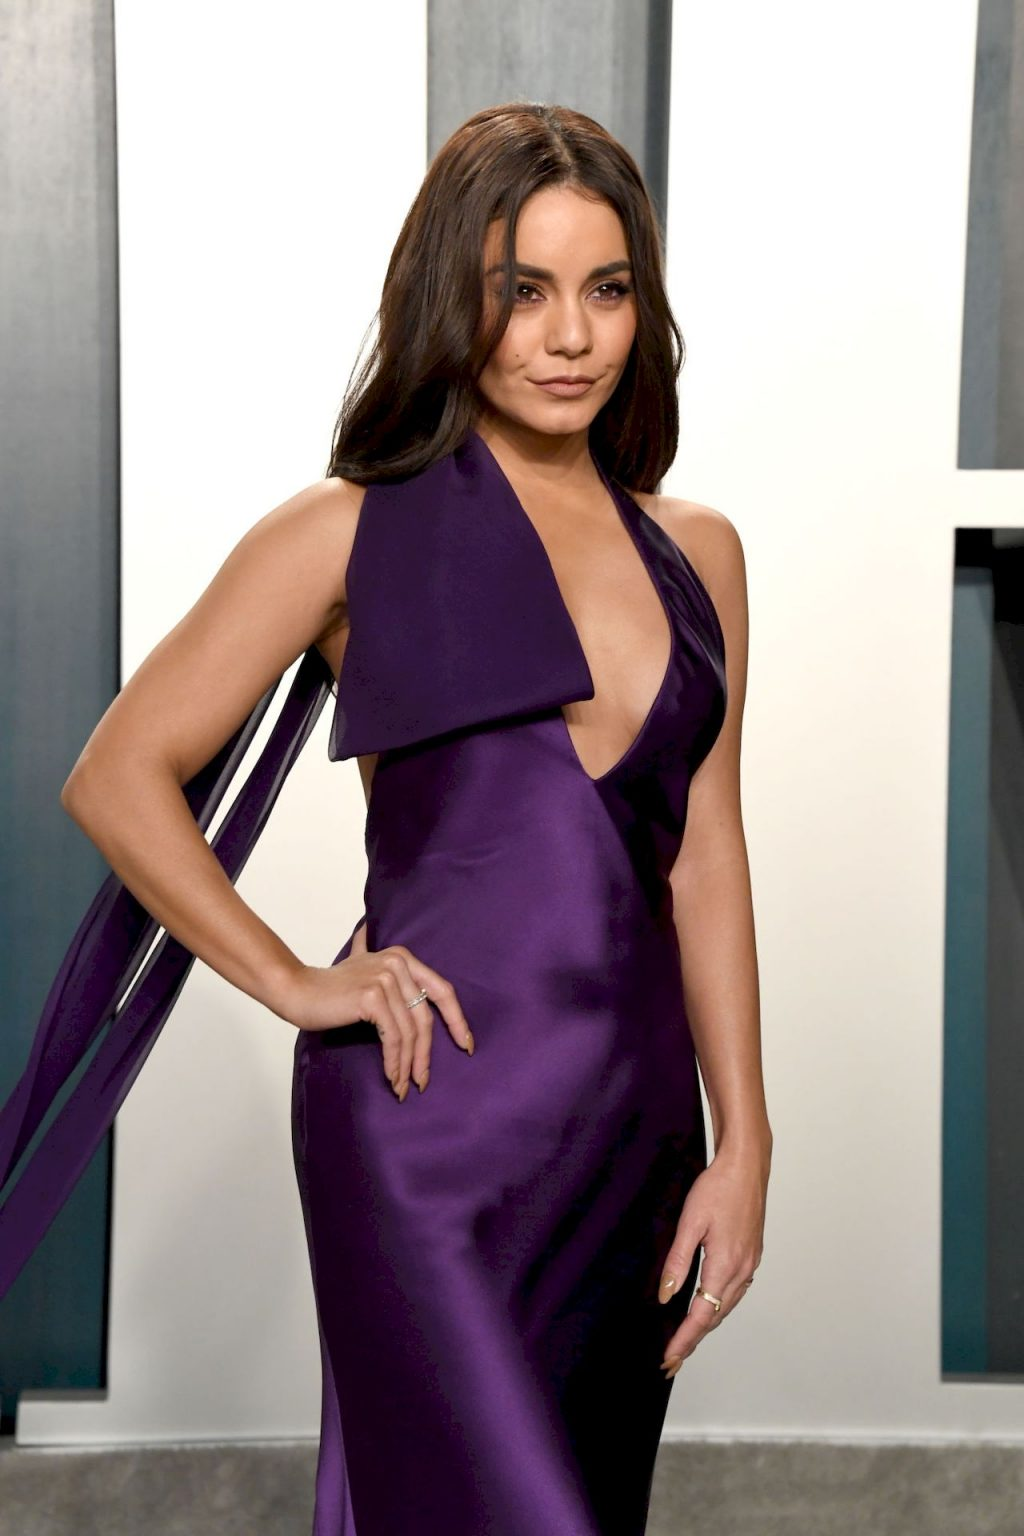 Vanessa Hudgens Looks Sexy in a Purple Dress at the Vanity Fair Oscar Party (45 Photos)